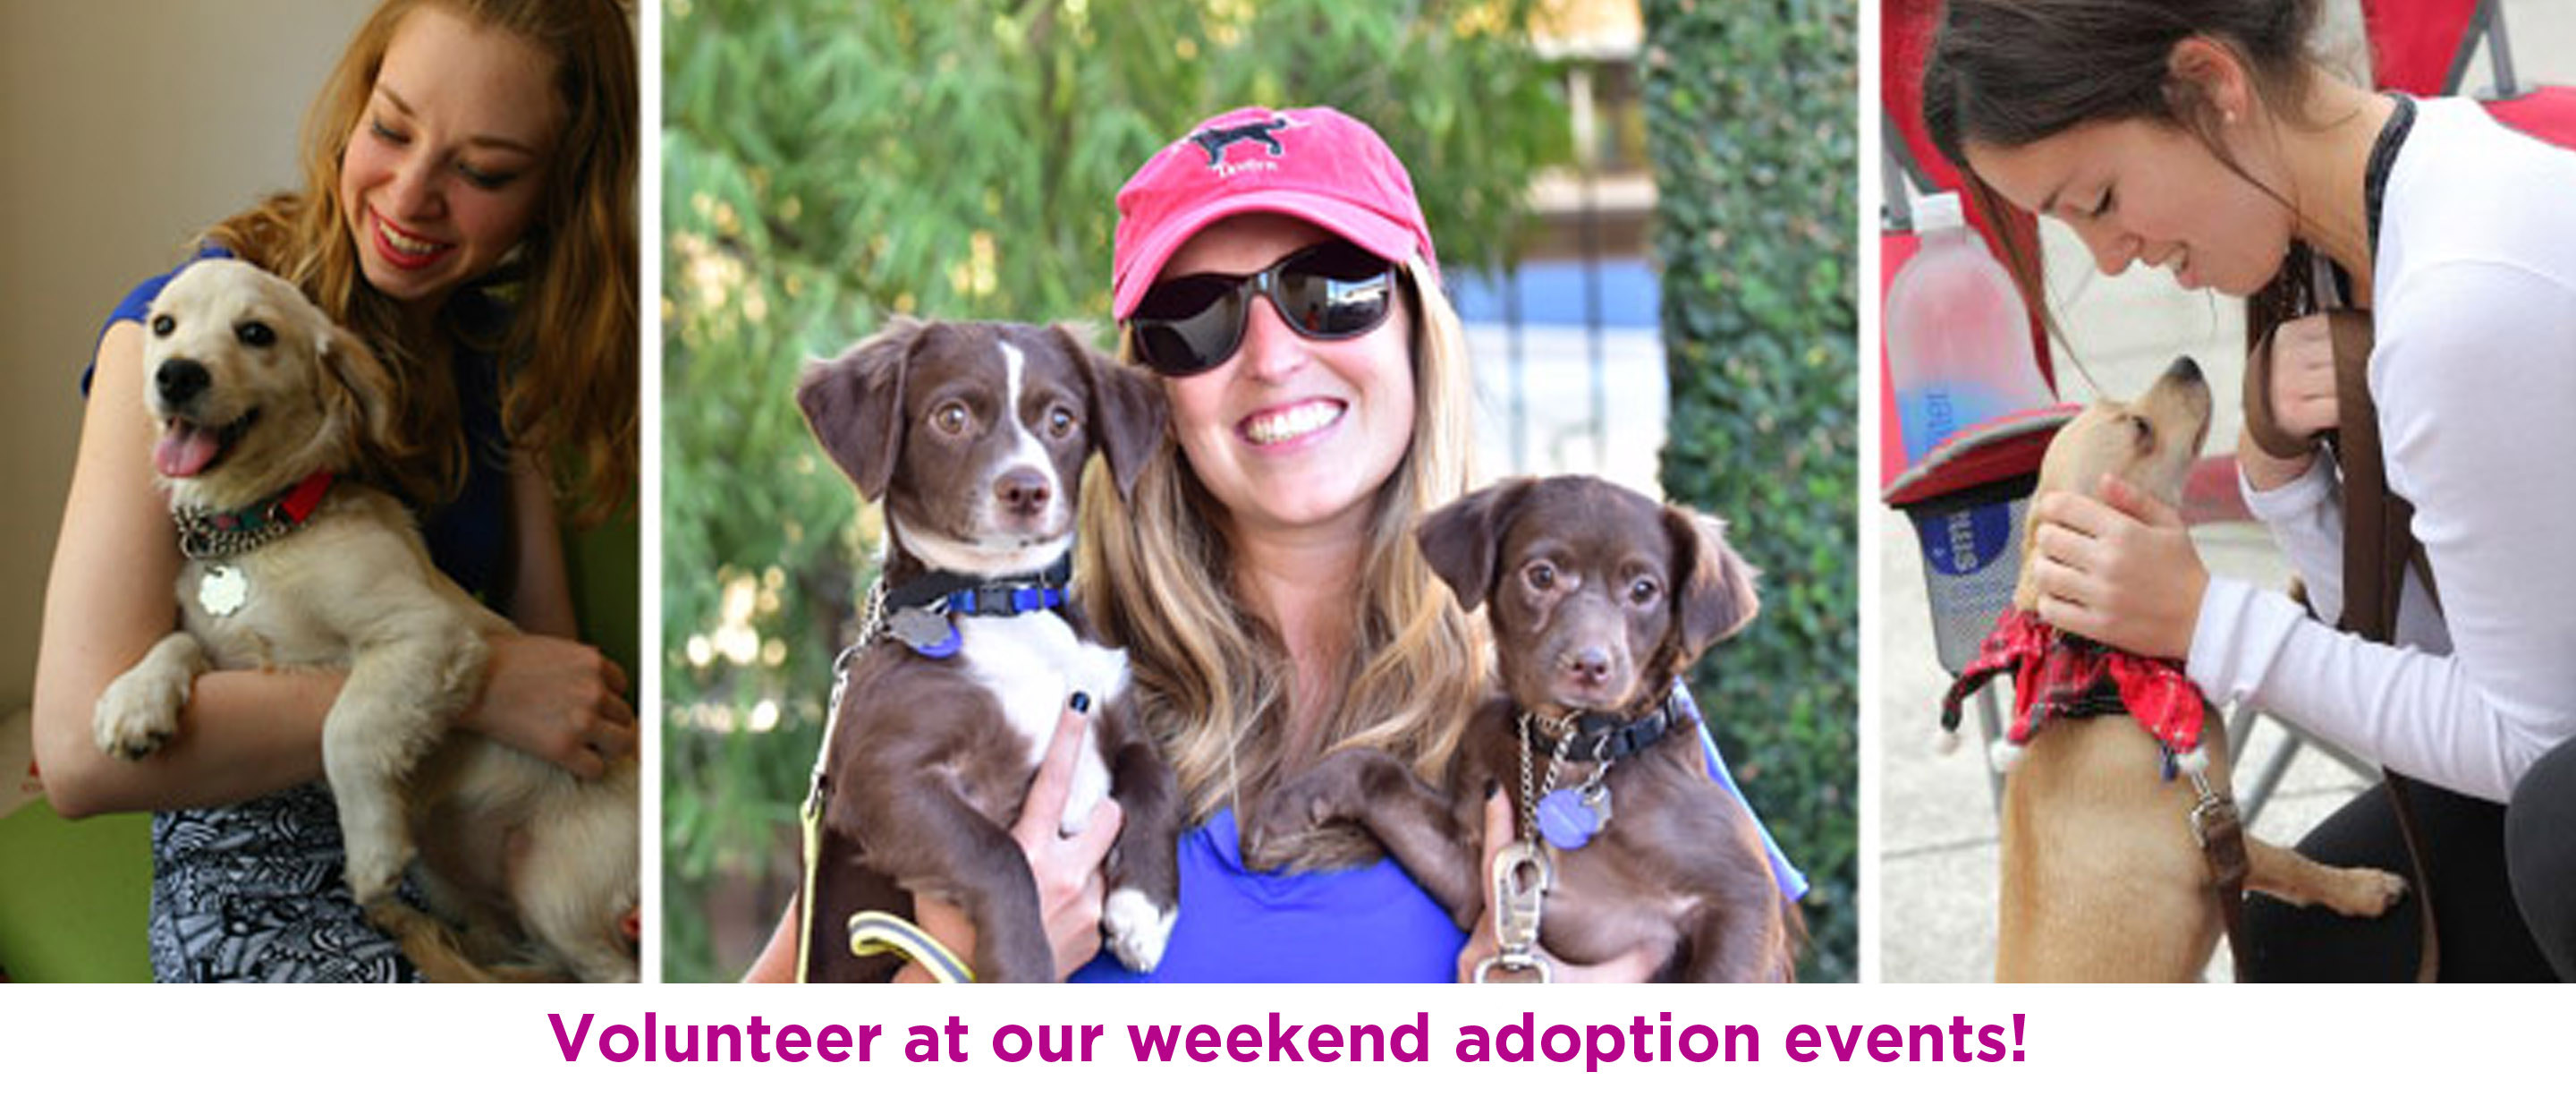 Volunteer at our weekend adoption events!